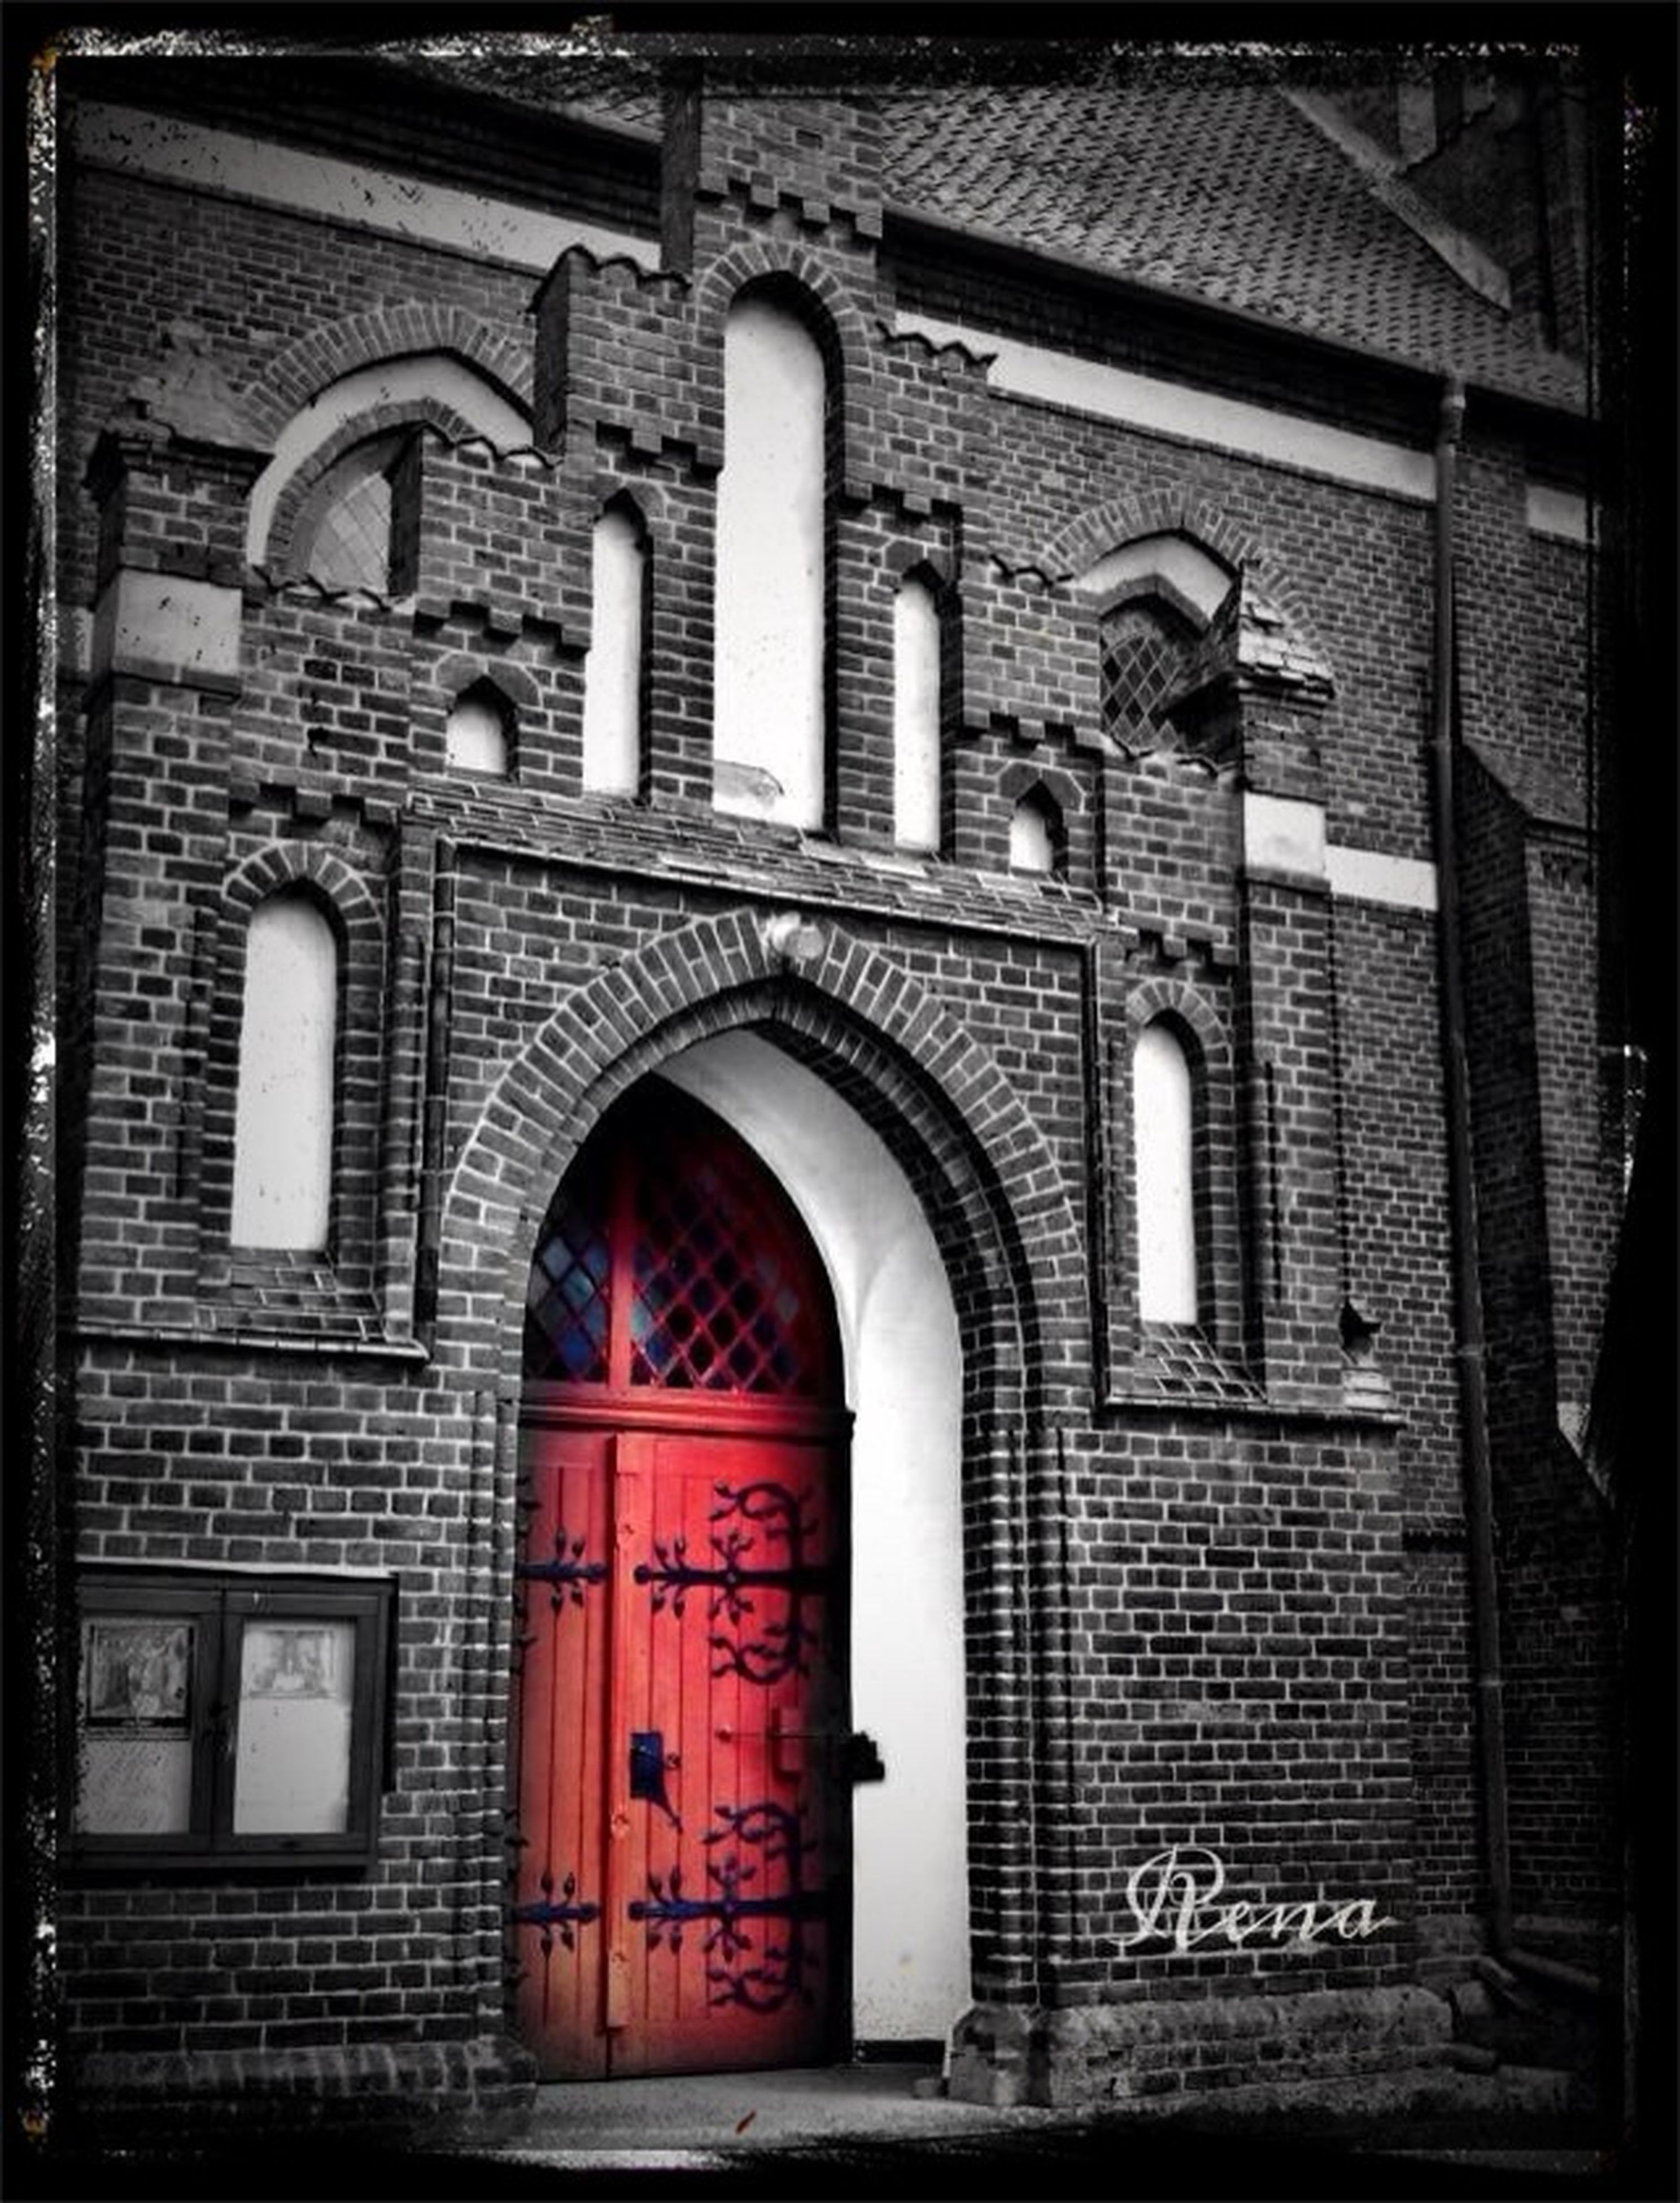 architecture, built structure, building exterior, arch, door, entrance, transfer print, facade, window, closed, auto post production filter, brick wall, church, old, religion, gate, day, outdoors, place of worship, history